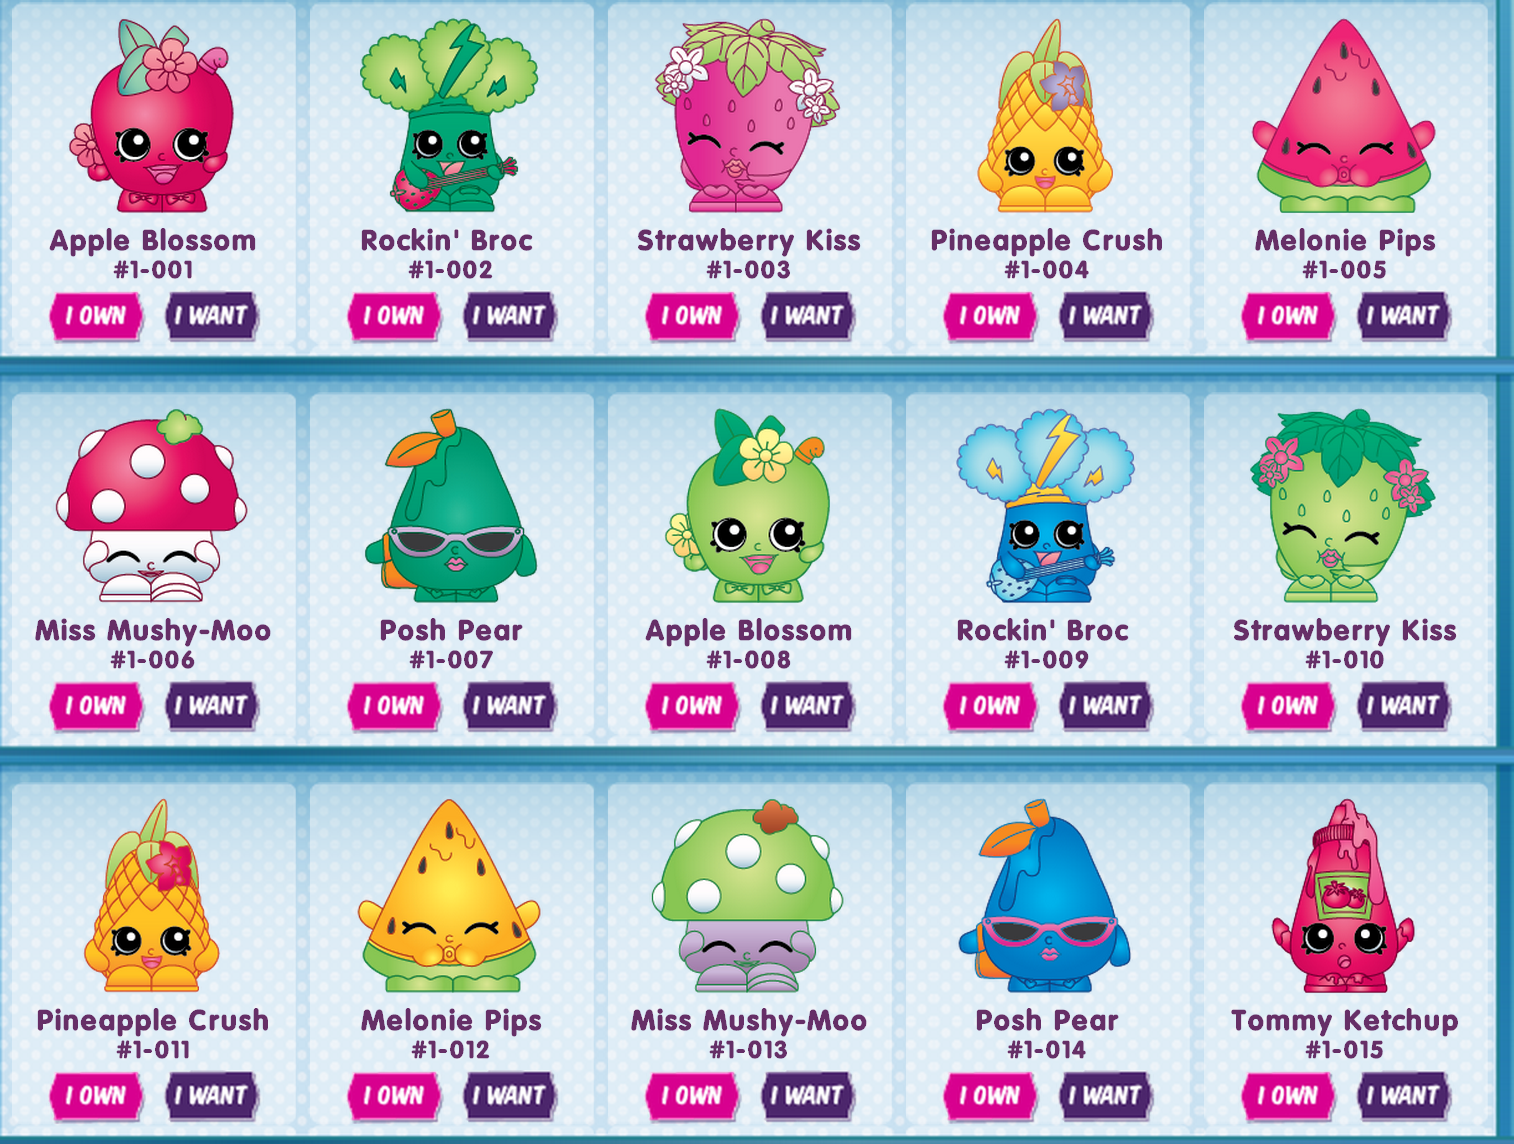 graphic regarding Shopkins List Printable identified as 50+] Shopkins Wallpaper Pictures upon WallpaperSafari